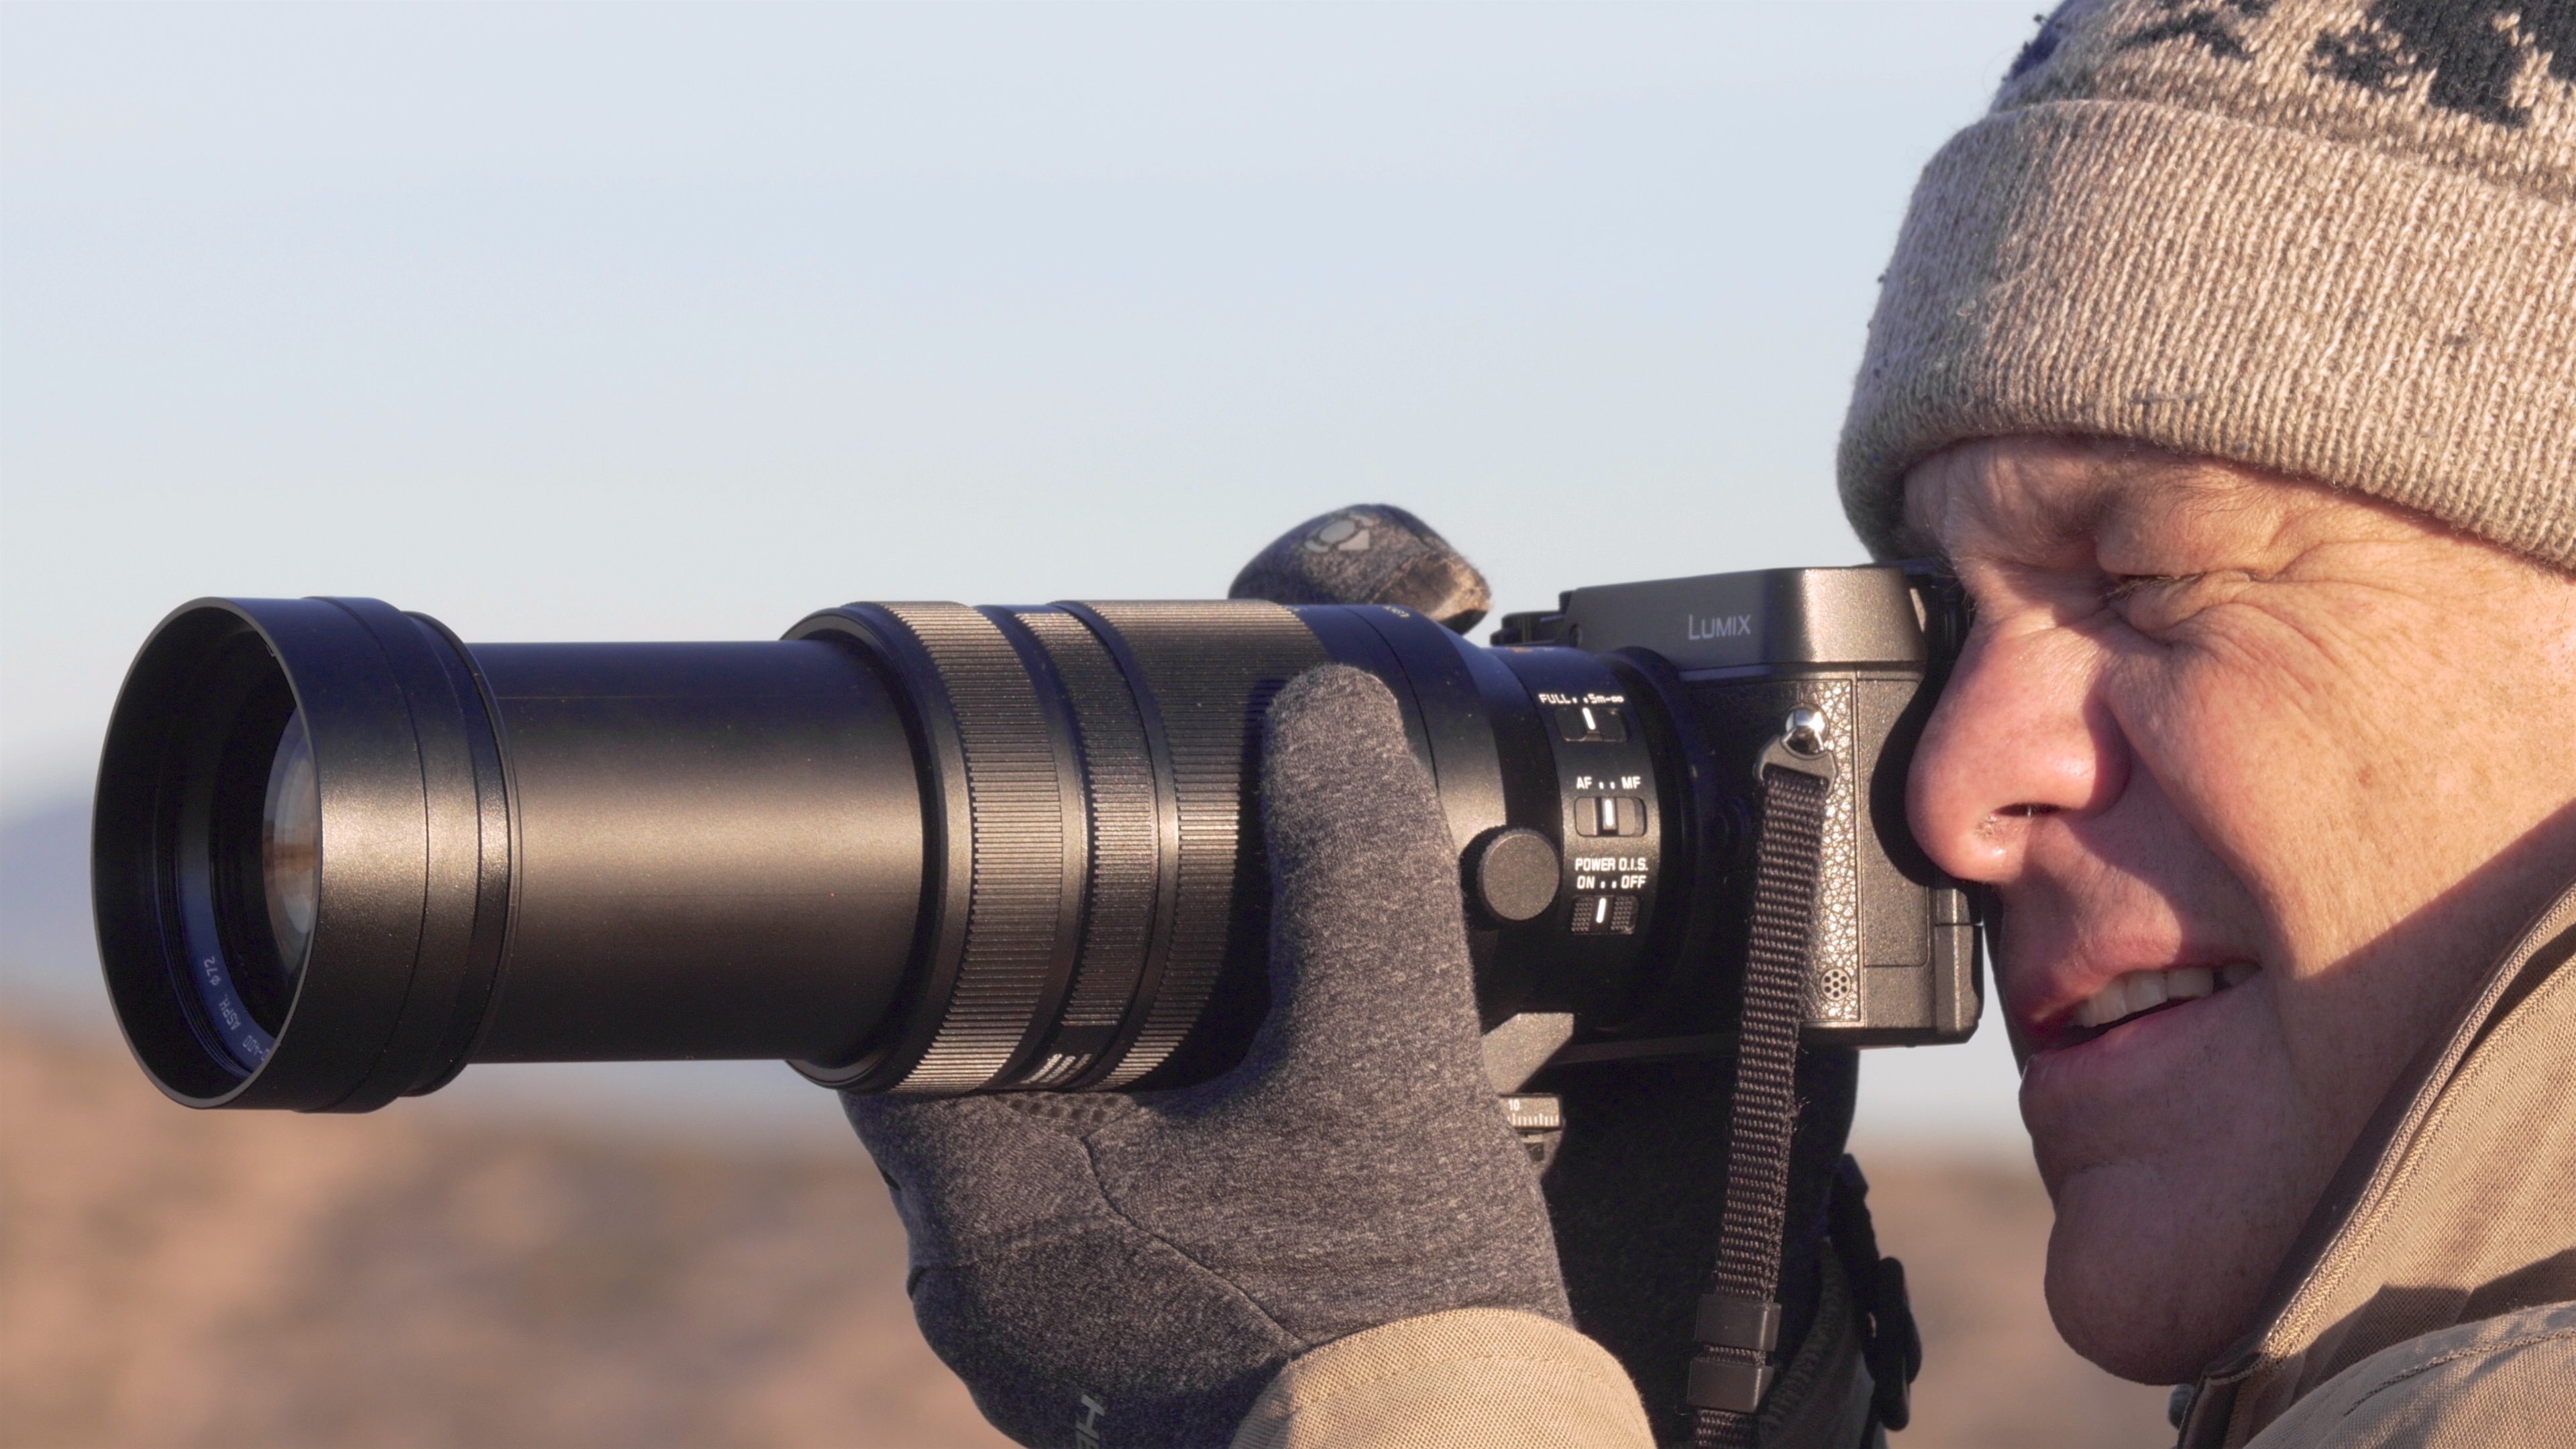 Me shooting the 100-400mm hand held zoomed all the way out to 400mm.